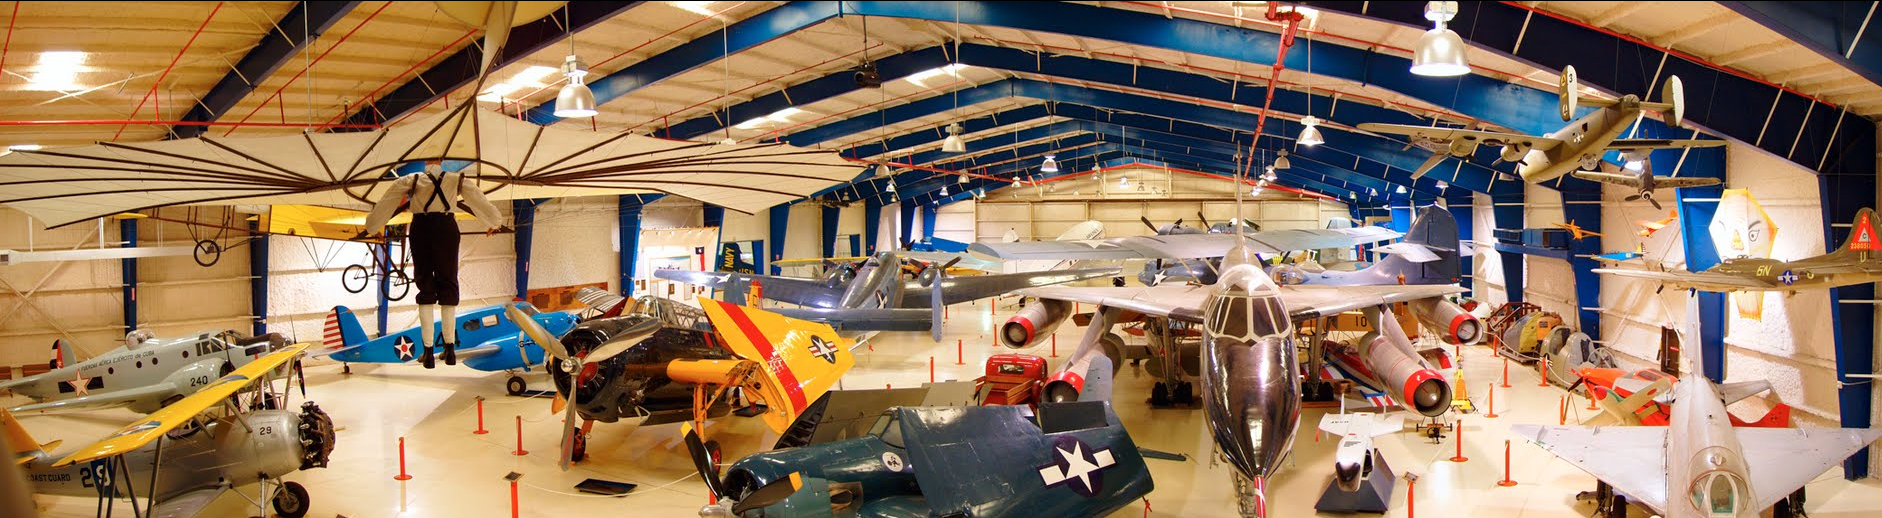 The Lone Star Flight Museum, a 501 (c)(3) self-supporting educational museum, began as a private aircraft collection in June 1985.